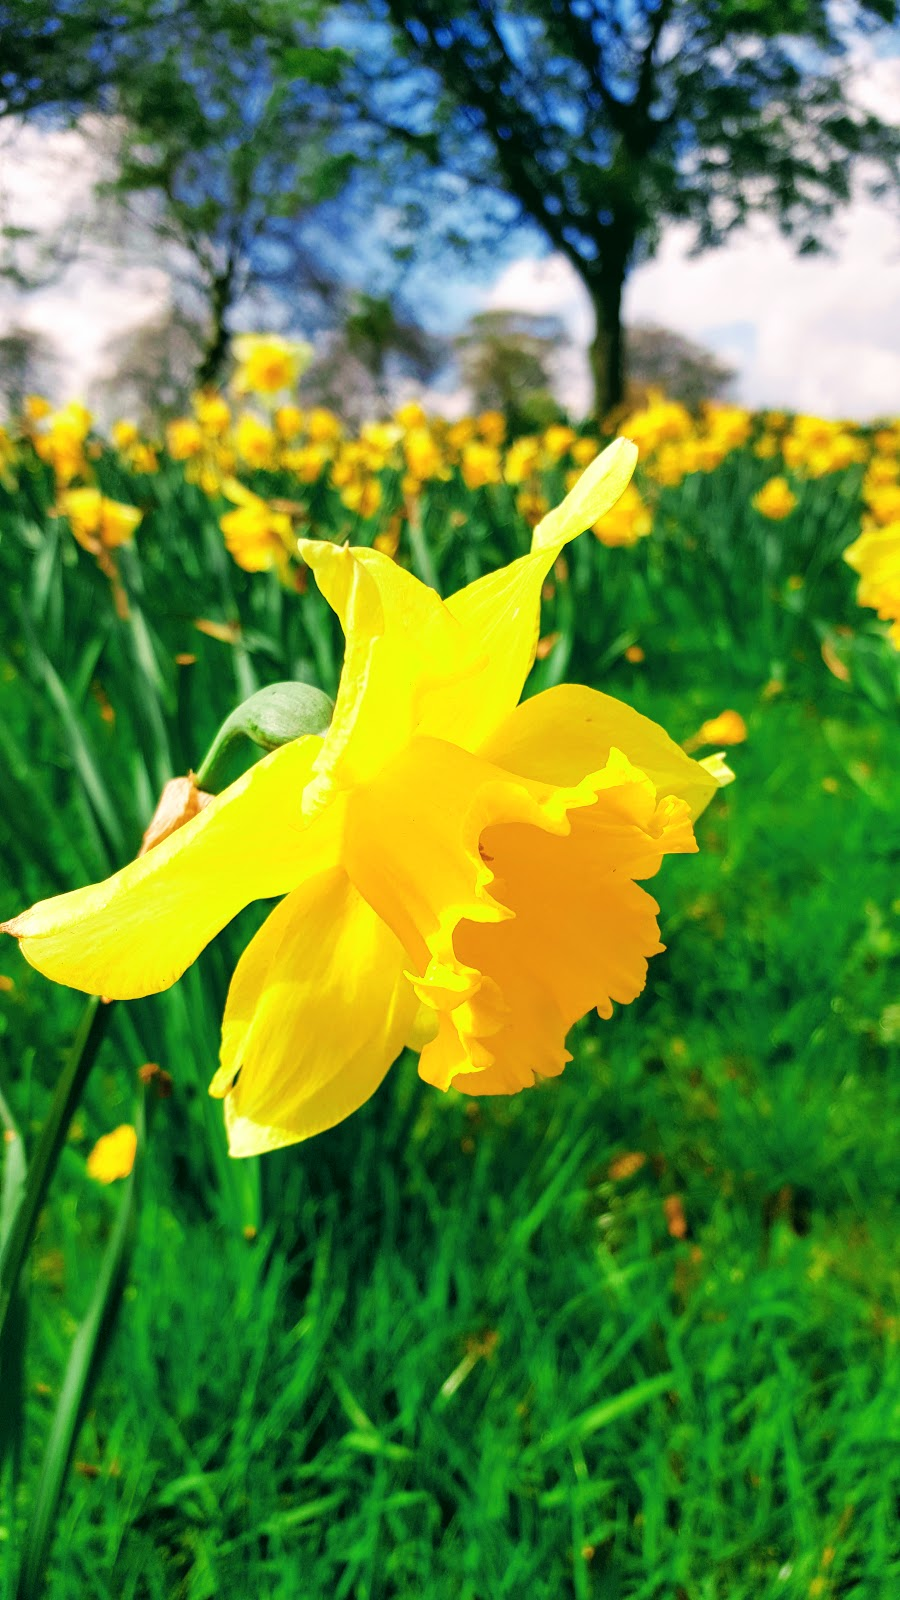 Yellow Daffodil Flower Photo by @clairejustineo